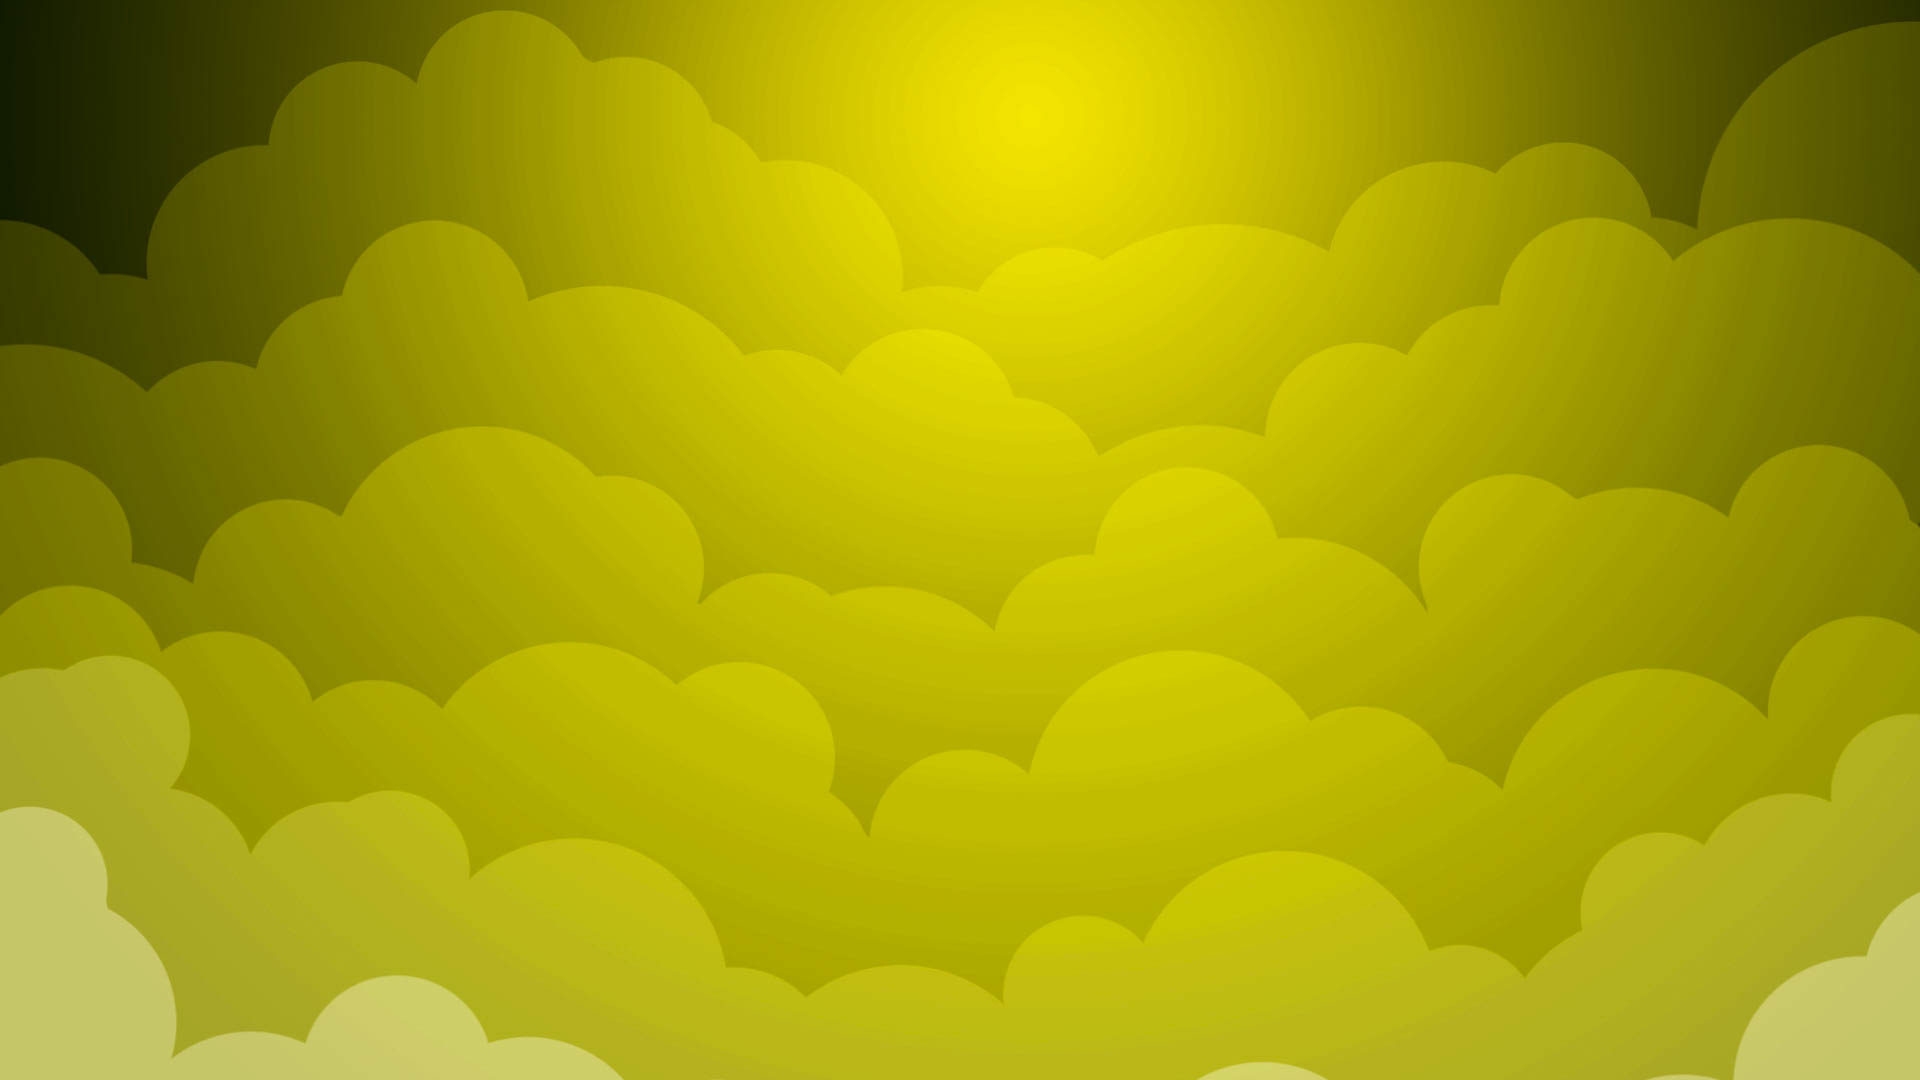 clouds hd wallpapers  images abstract  high definition